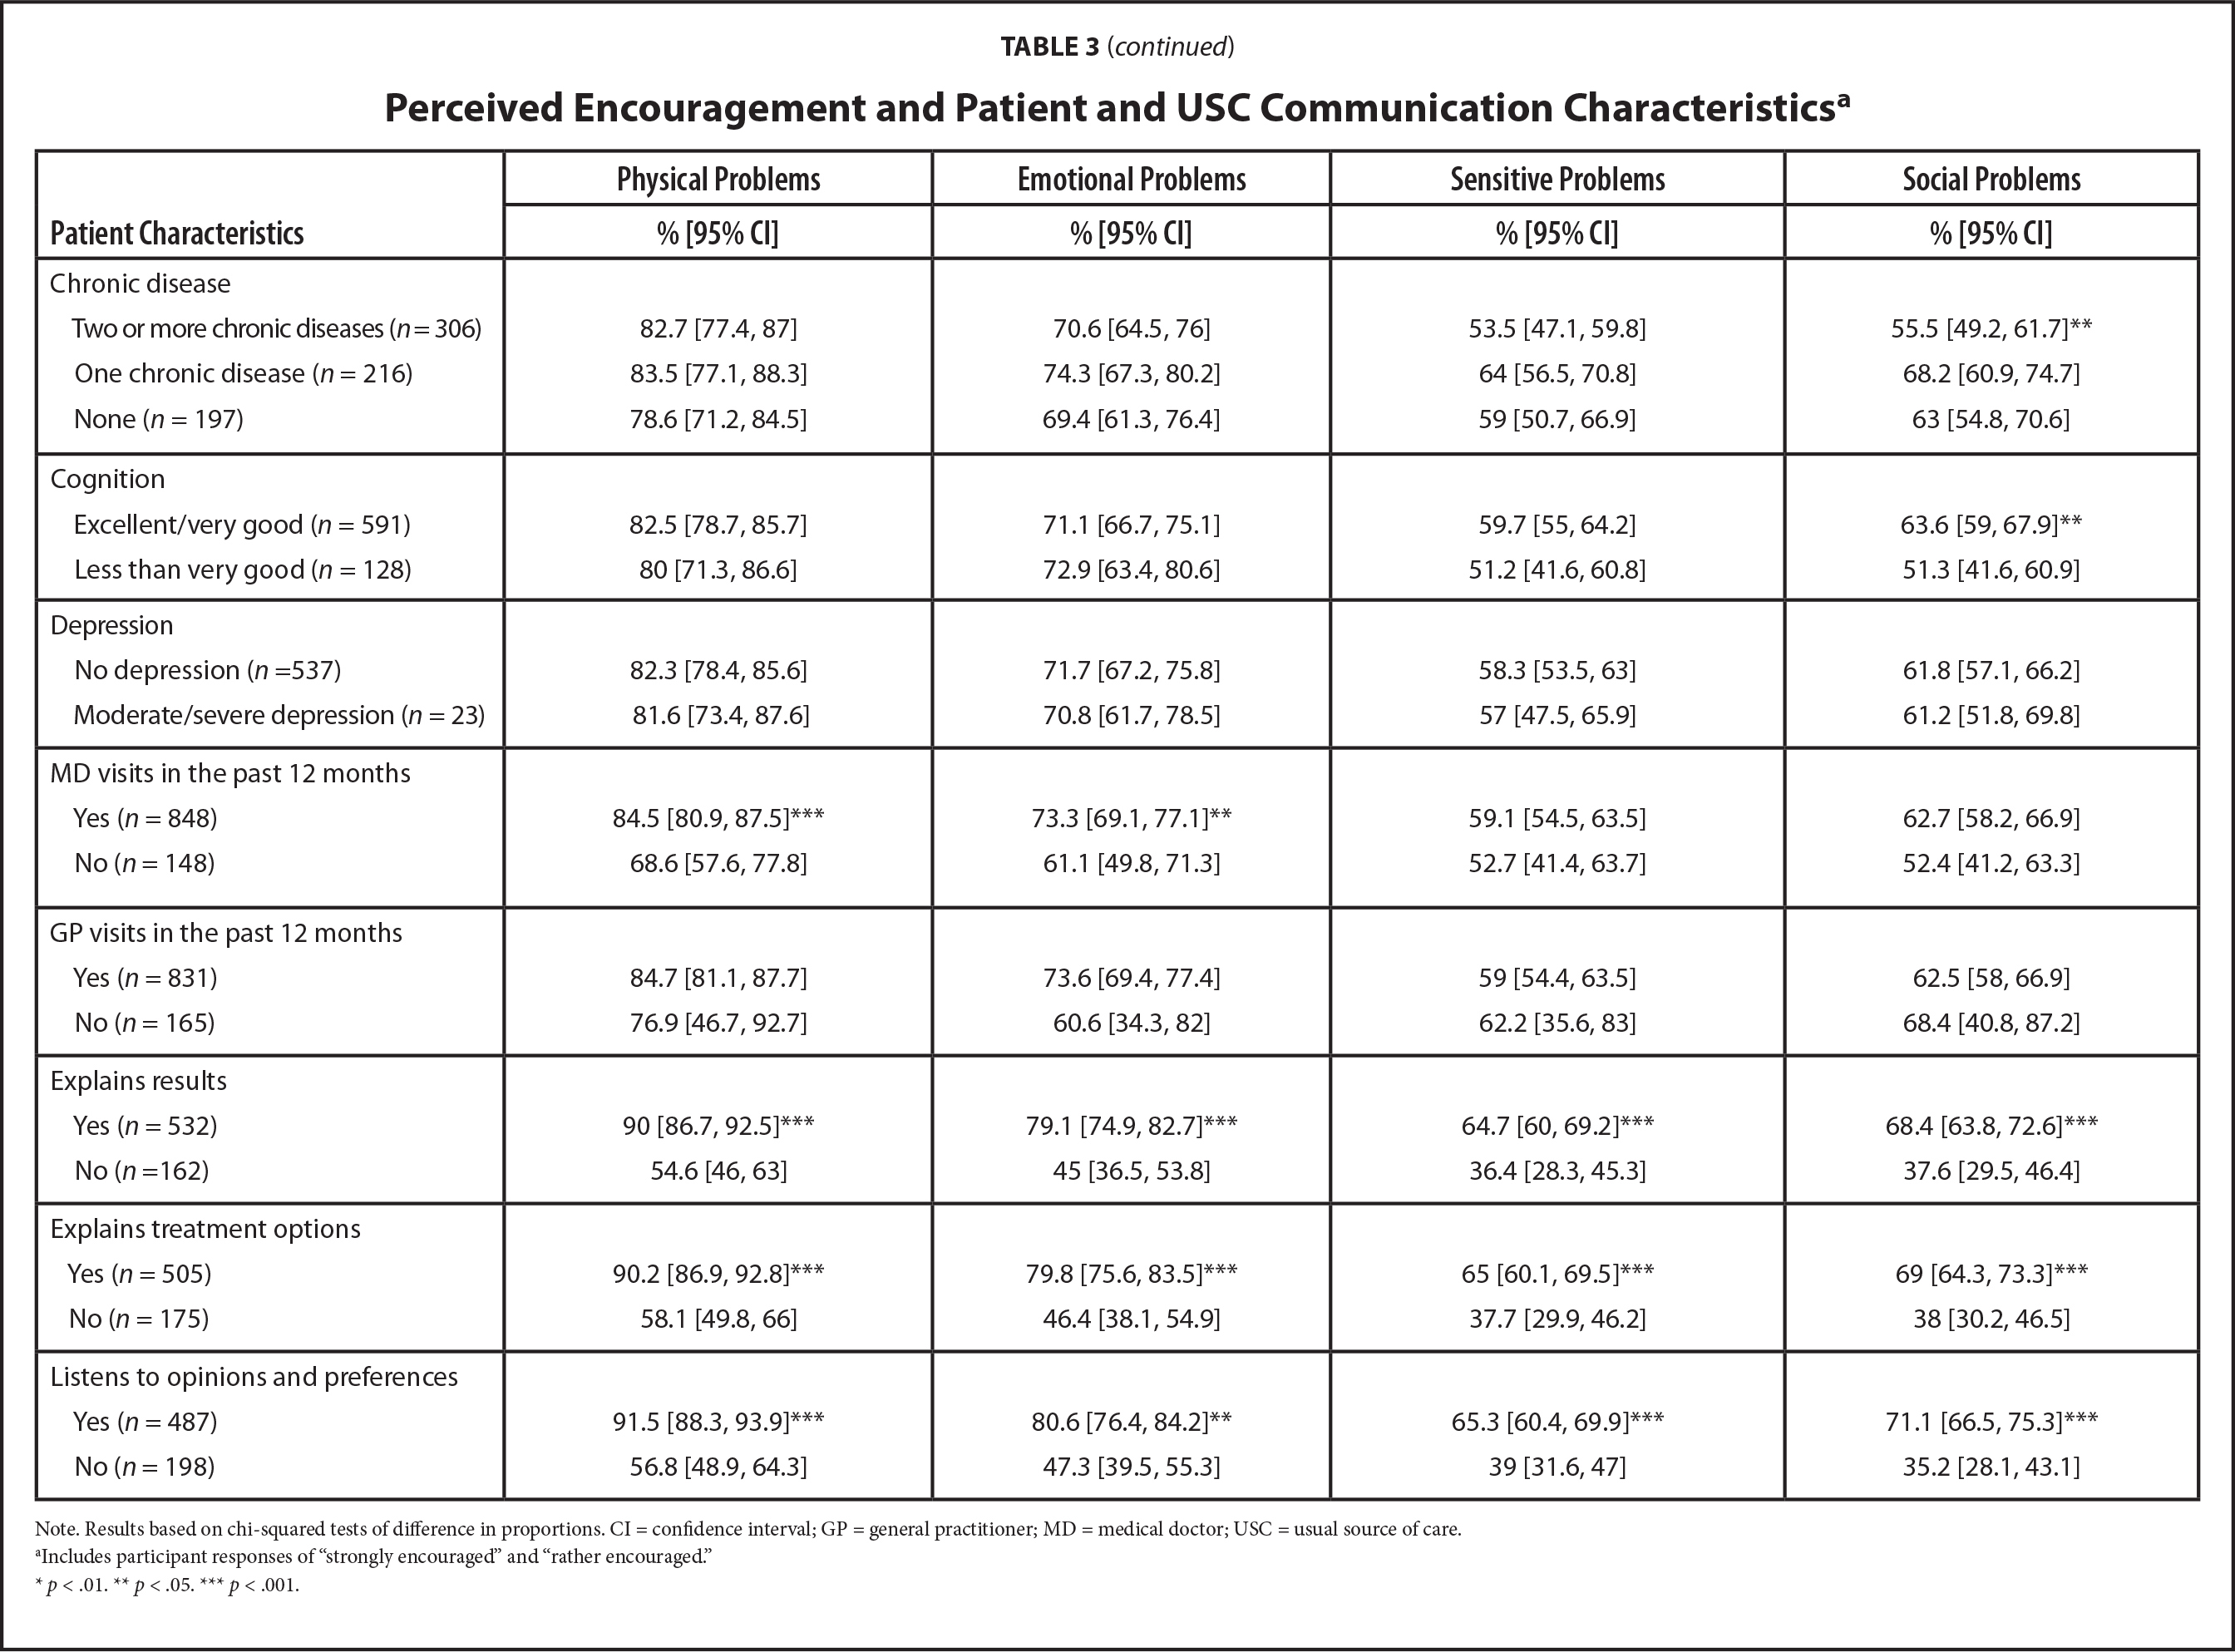 Perceived Encouragement and Patient and USC Communication Characteristicsa